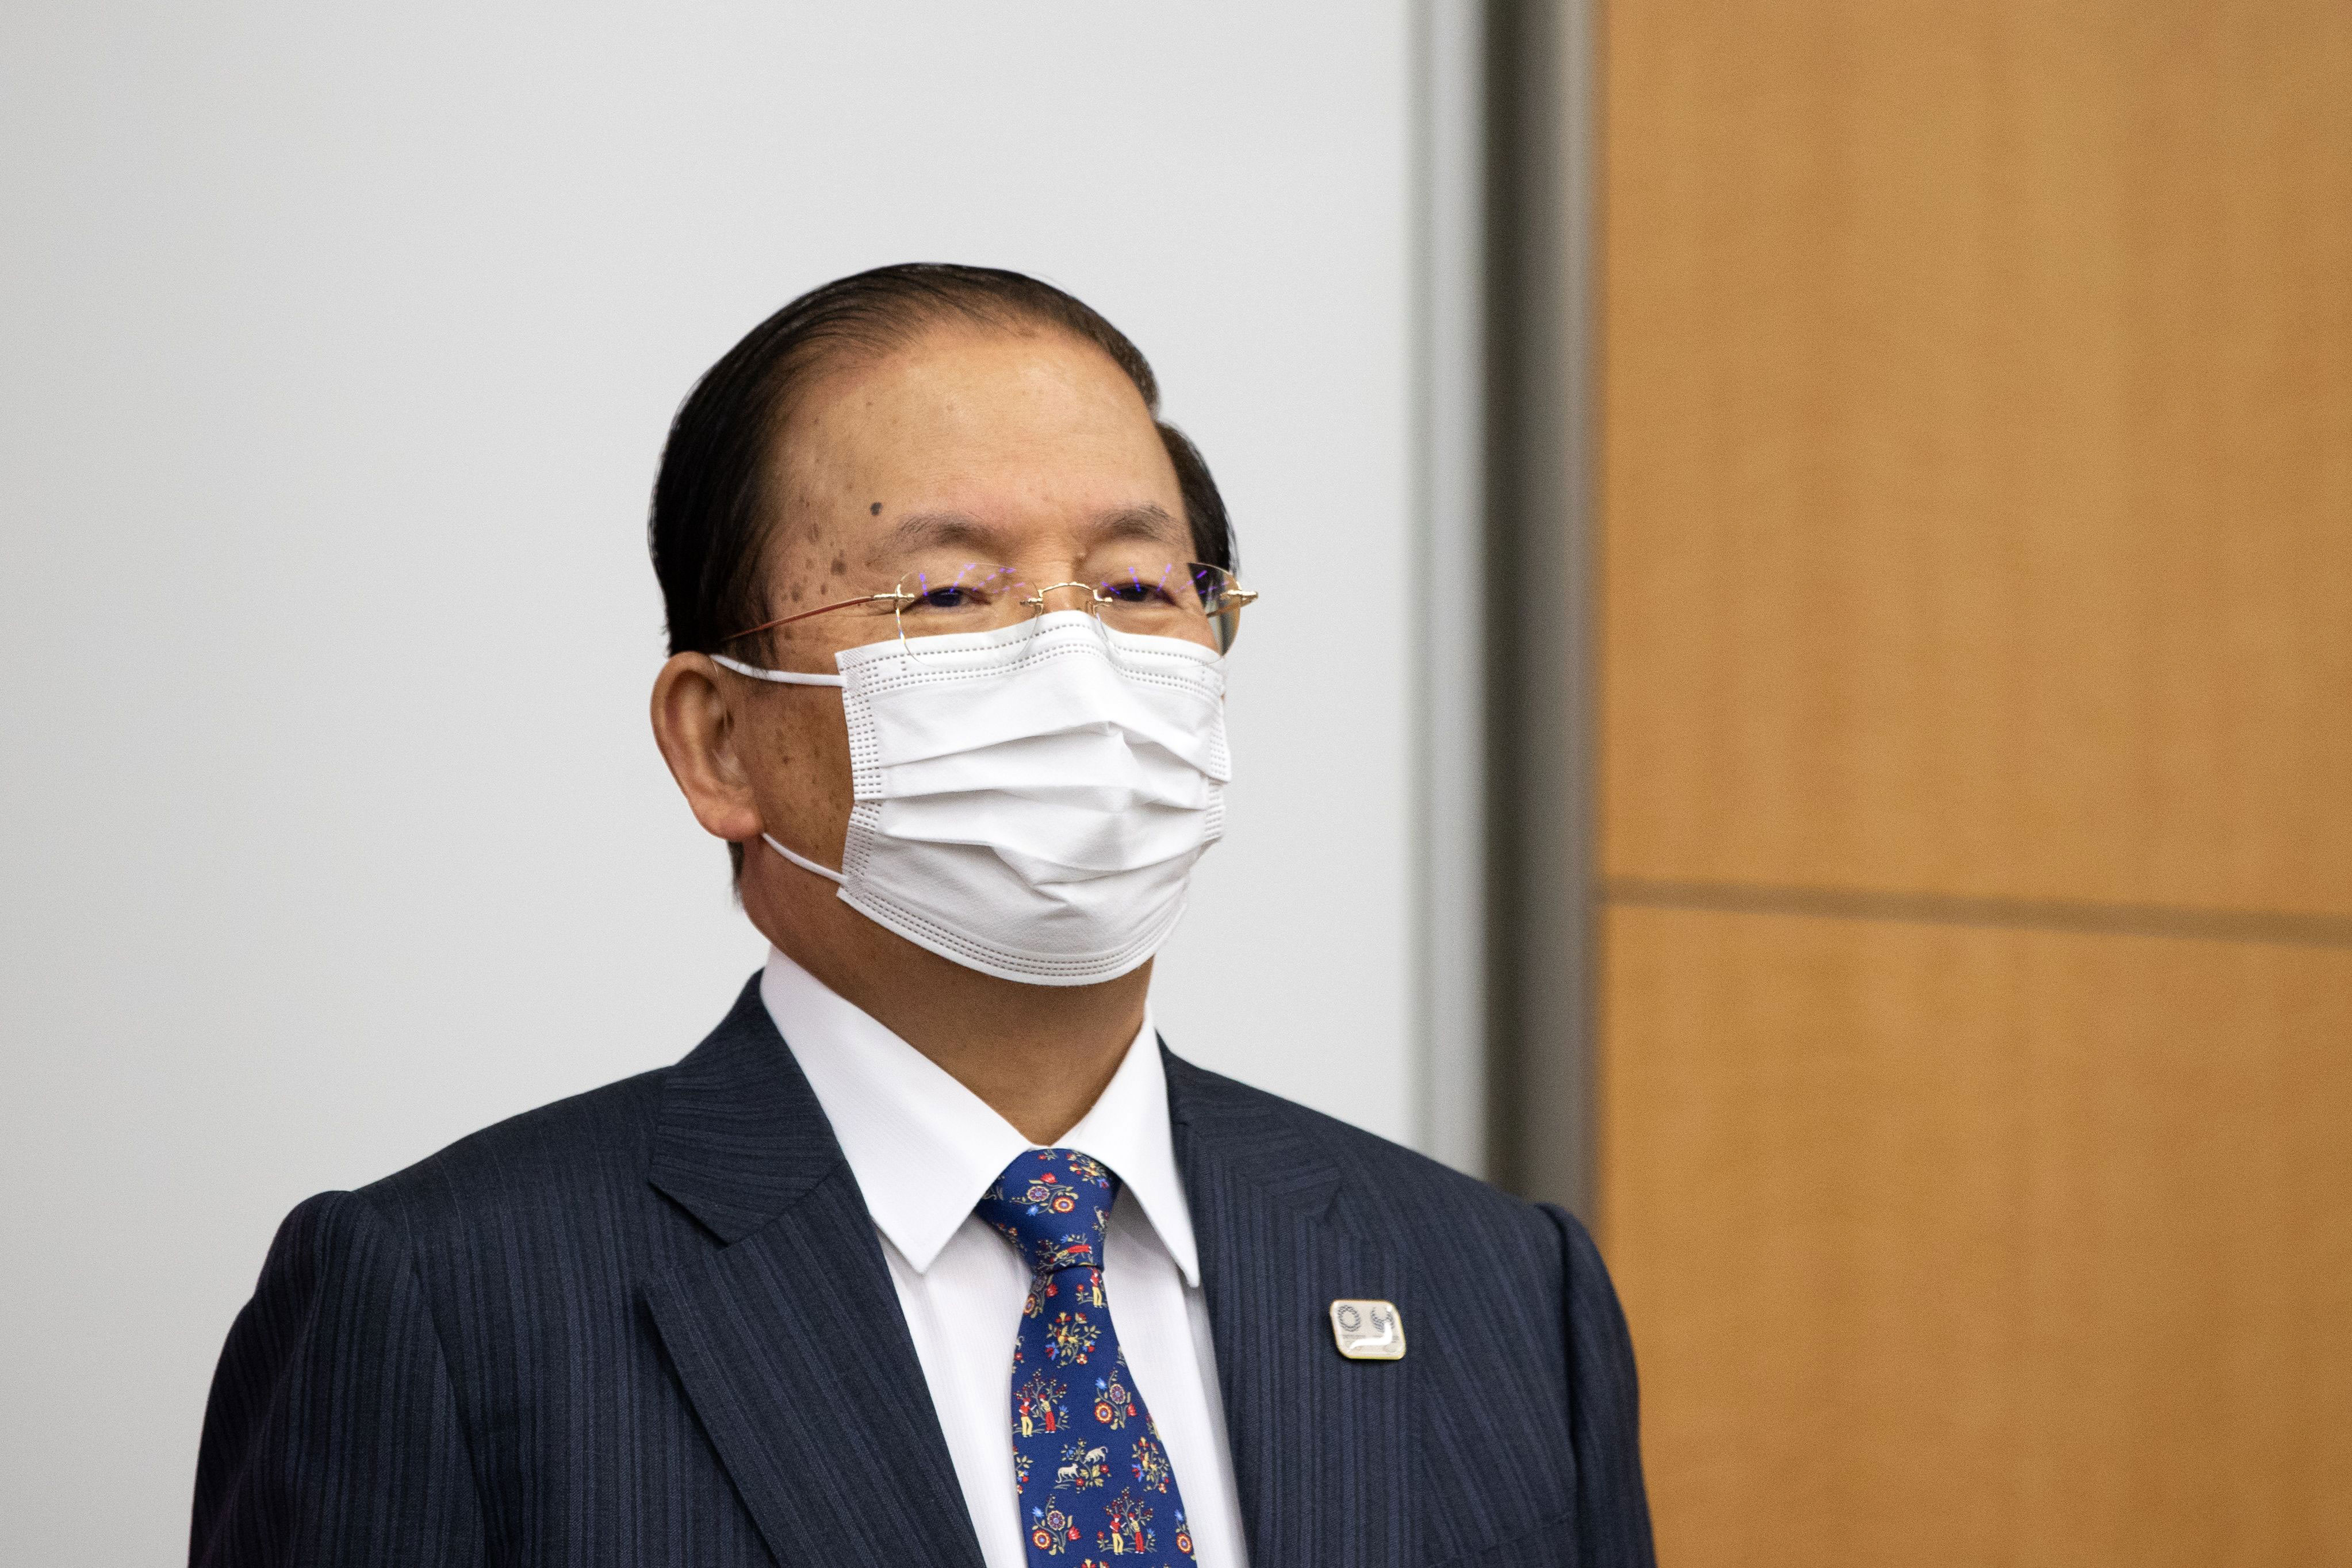 Tokyo 2020 CEO Toshiro Muto speaks to the media in the Japanese capital on January 28.